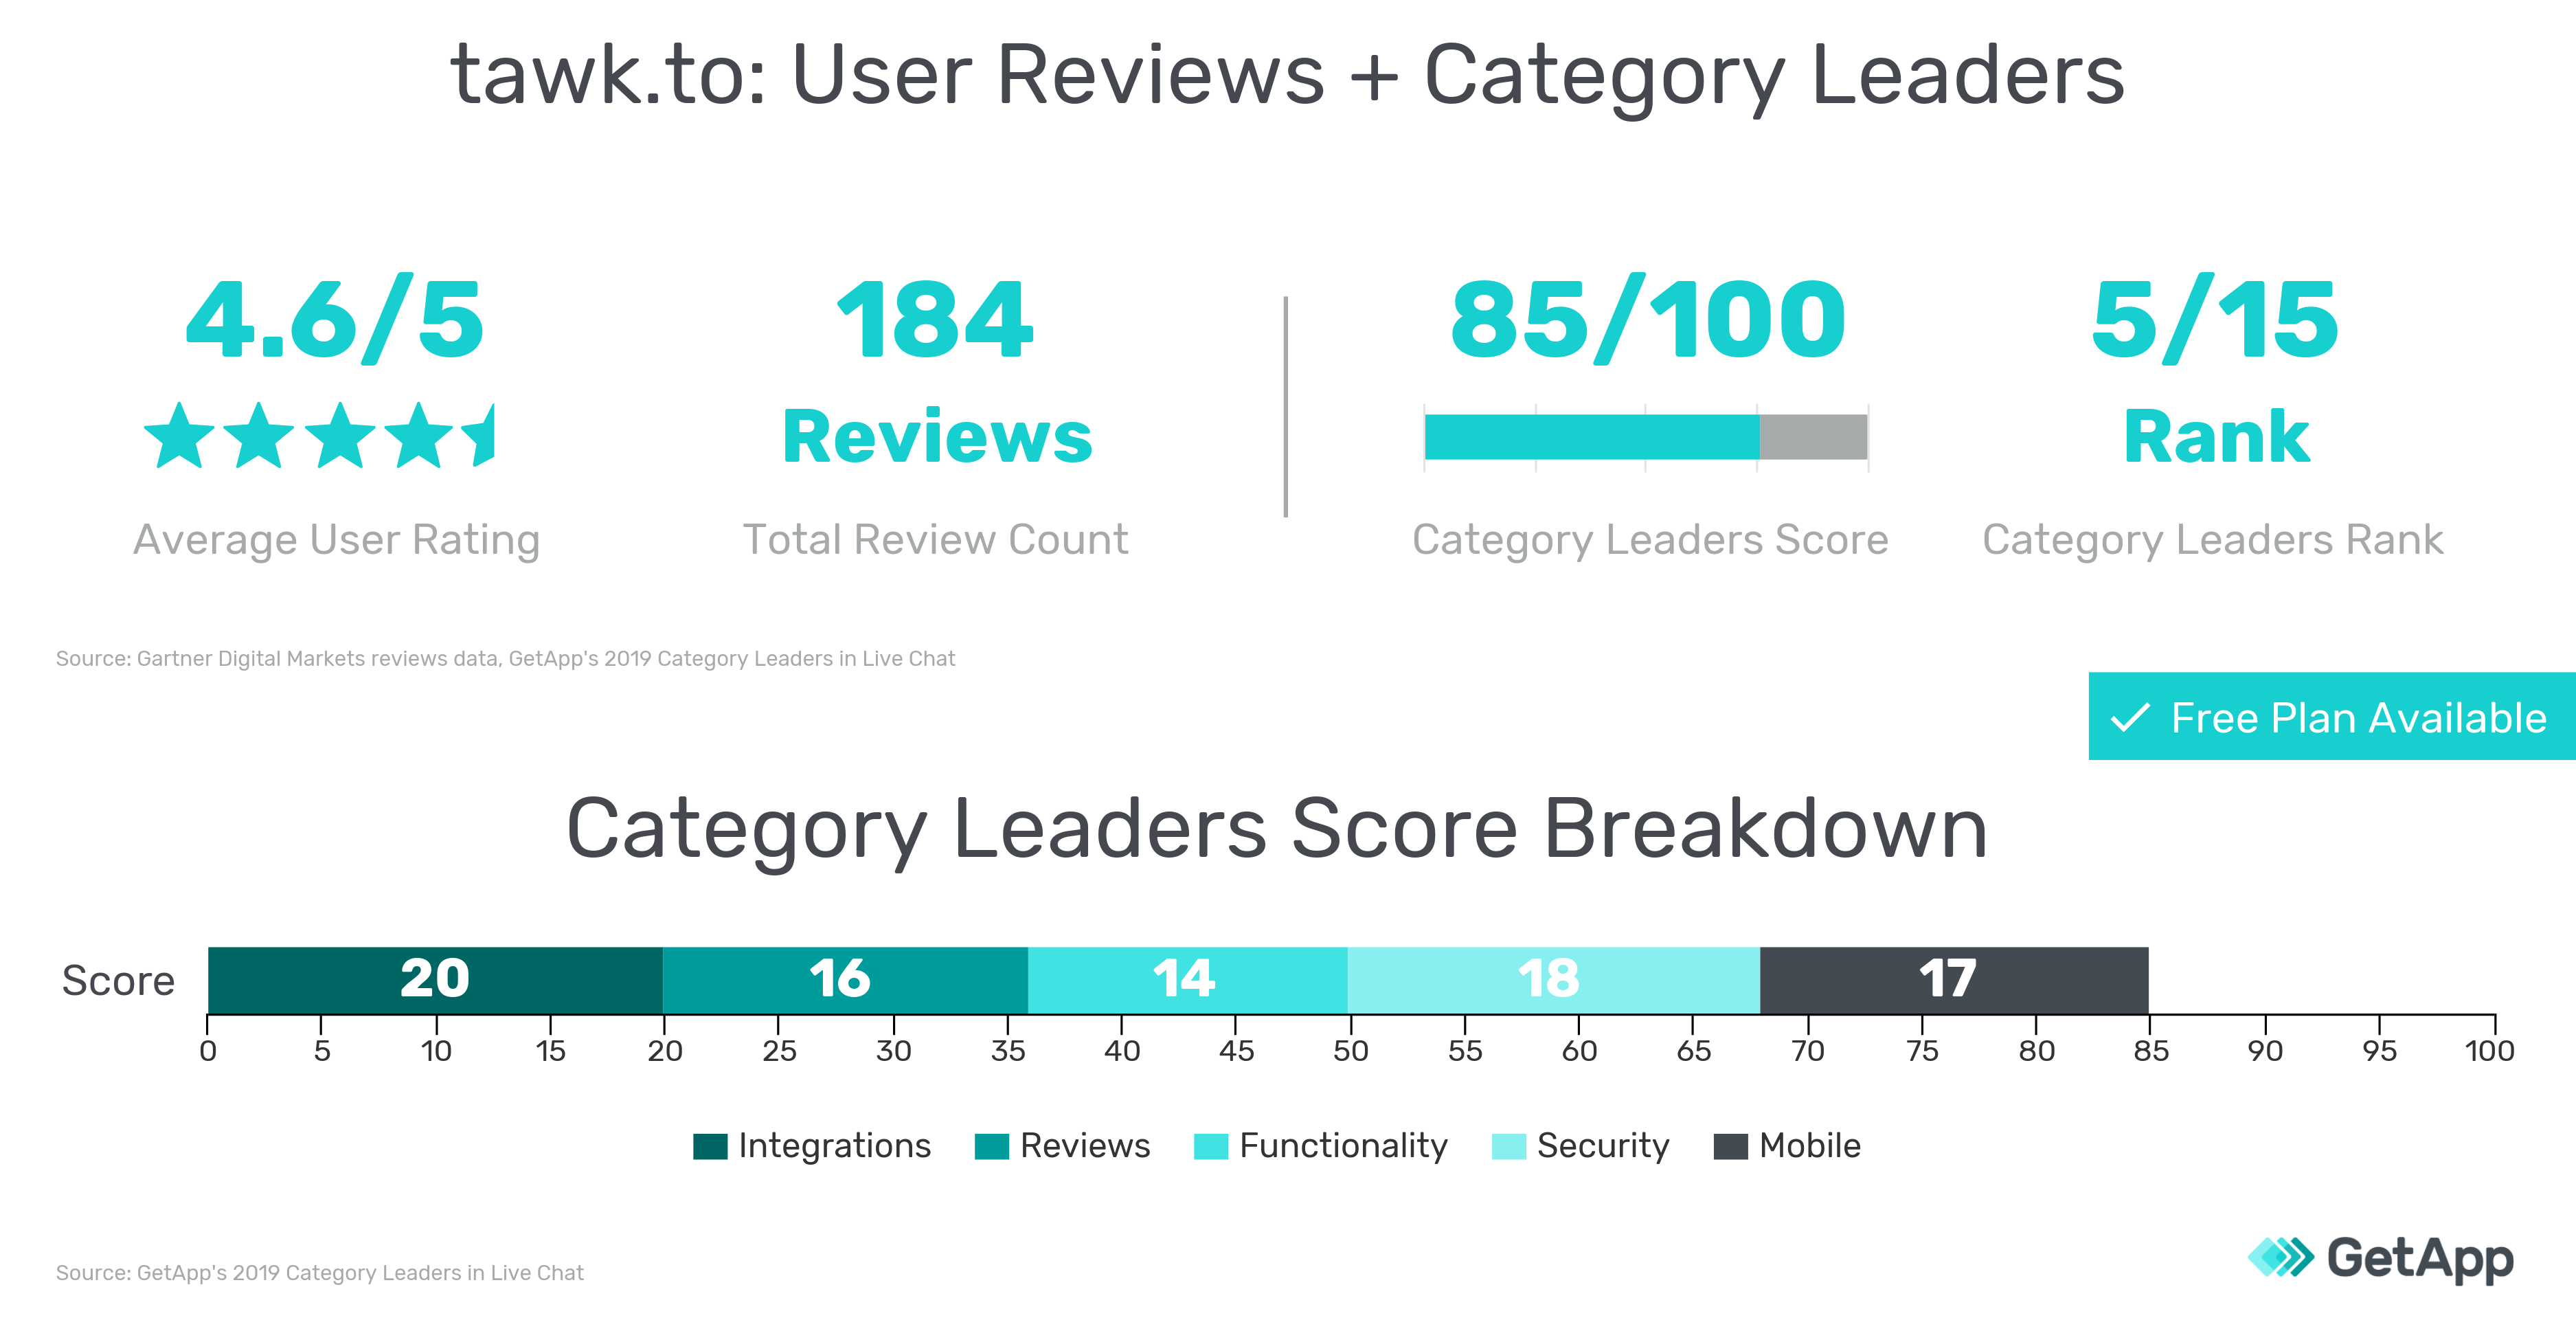 User reviews information and 2019 Category Leaders scores for Tawk.to graphic